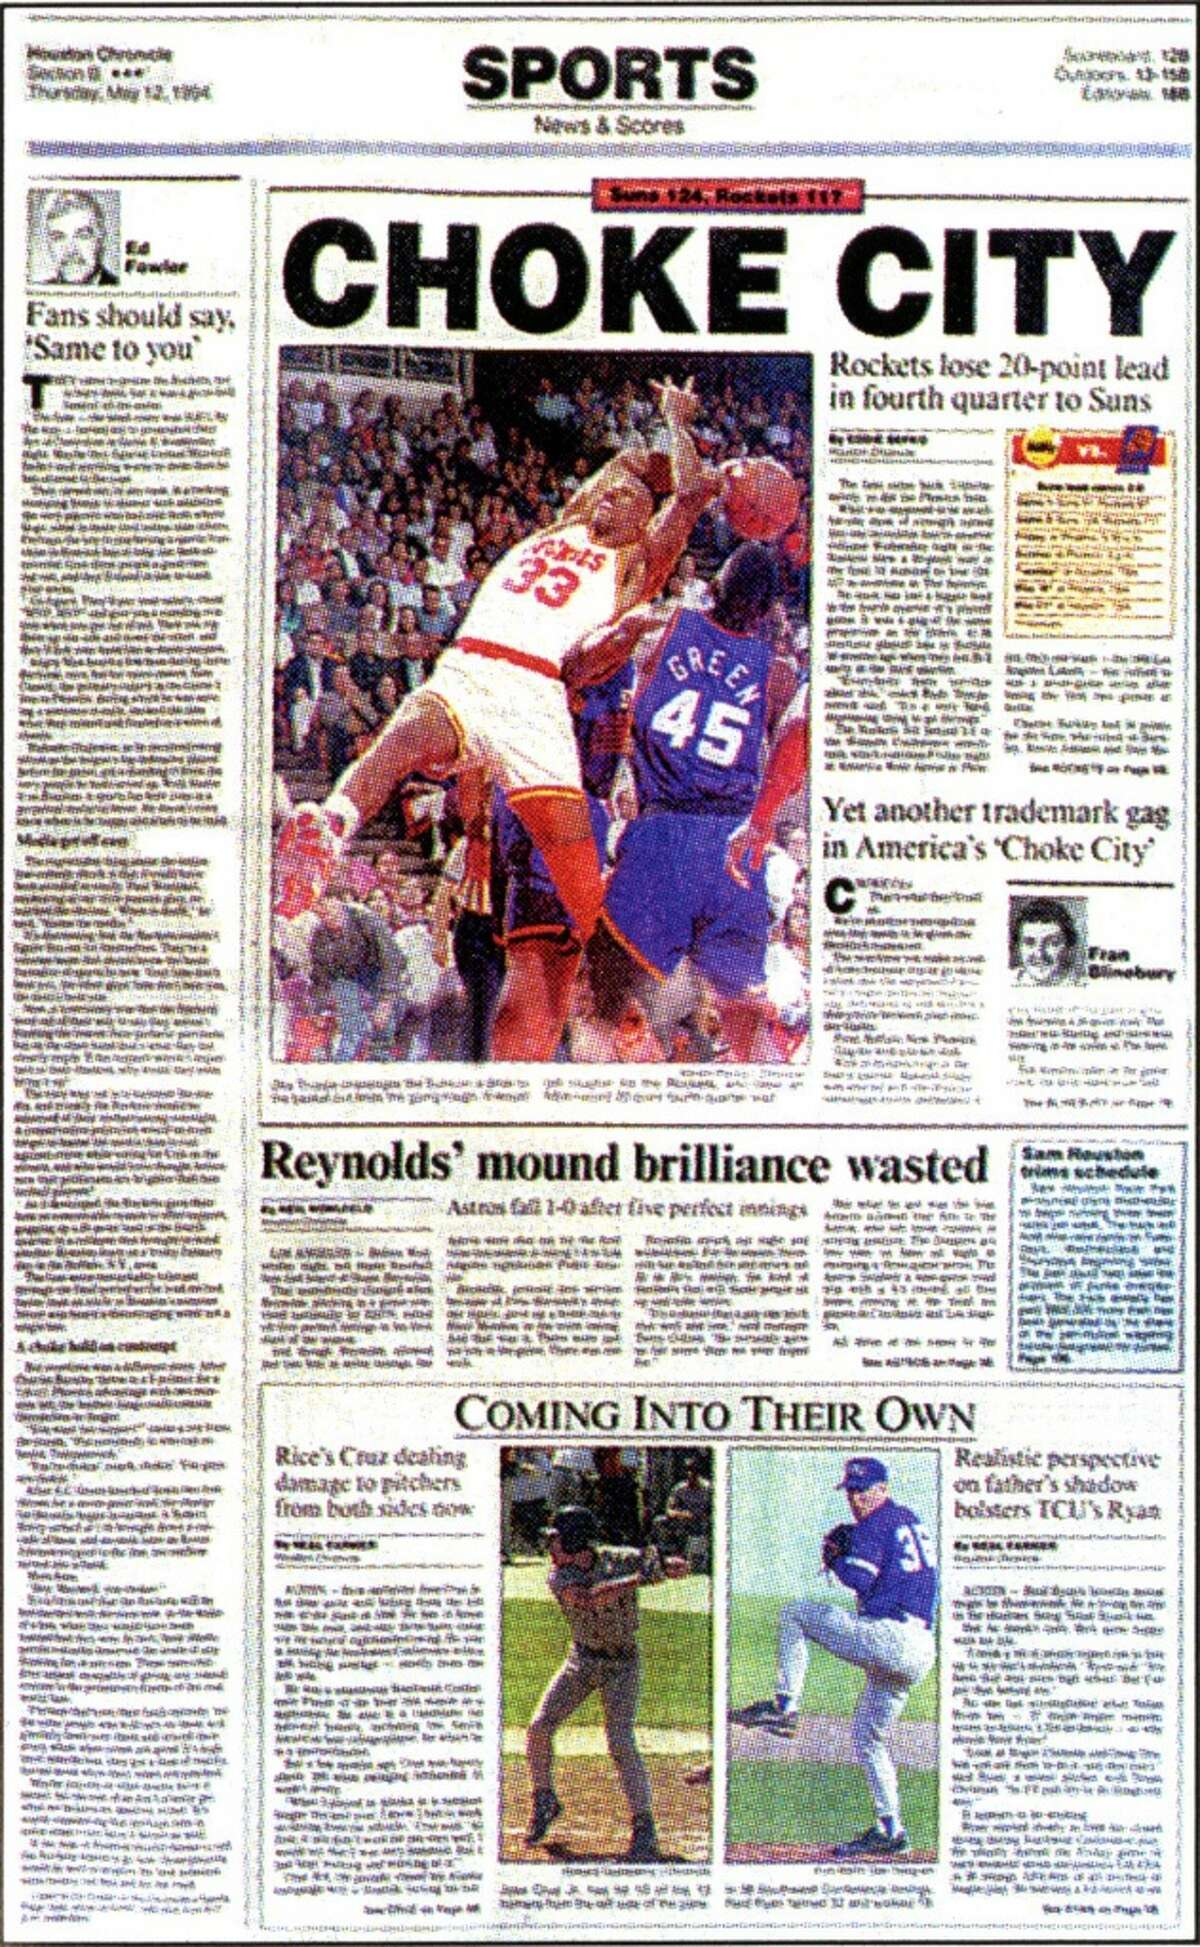 """'Choke City' When: May 12, 1994 The moment: After blowing a 20-point, fourth-quarter lead and Game 2 of the Western Conference semifinal against Phoenix at The Summit, the Chronicle's headline the next day brought to mind the city's recent sporting past with the Oilers squandering big leads in playoff games the previous two seasons and the Astros to that point never having won a playoff series.The Rockets used the headline as motivation, with Mario Elie even writing """"Choke City"""" on his shoes. They eventually gave birth to a new headline. """"When we came back and won, I said to John Thomas, who at the time was running the business, 'They he got the wrong car part.' It's Clutch City, not Choke City, ' """" Rockets owner Leslie Alexander told the Chronicle. """"I'm very proud of that. I think it's great. We used to have a post office. You could send mail to Clutch City, Texas. I am proud of that."""""""